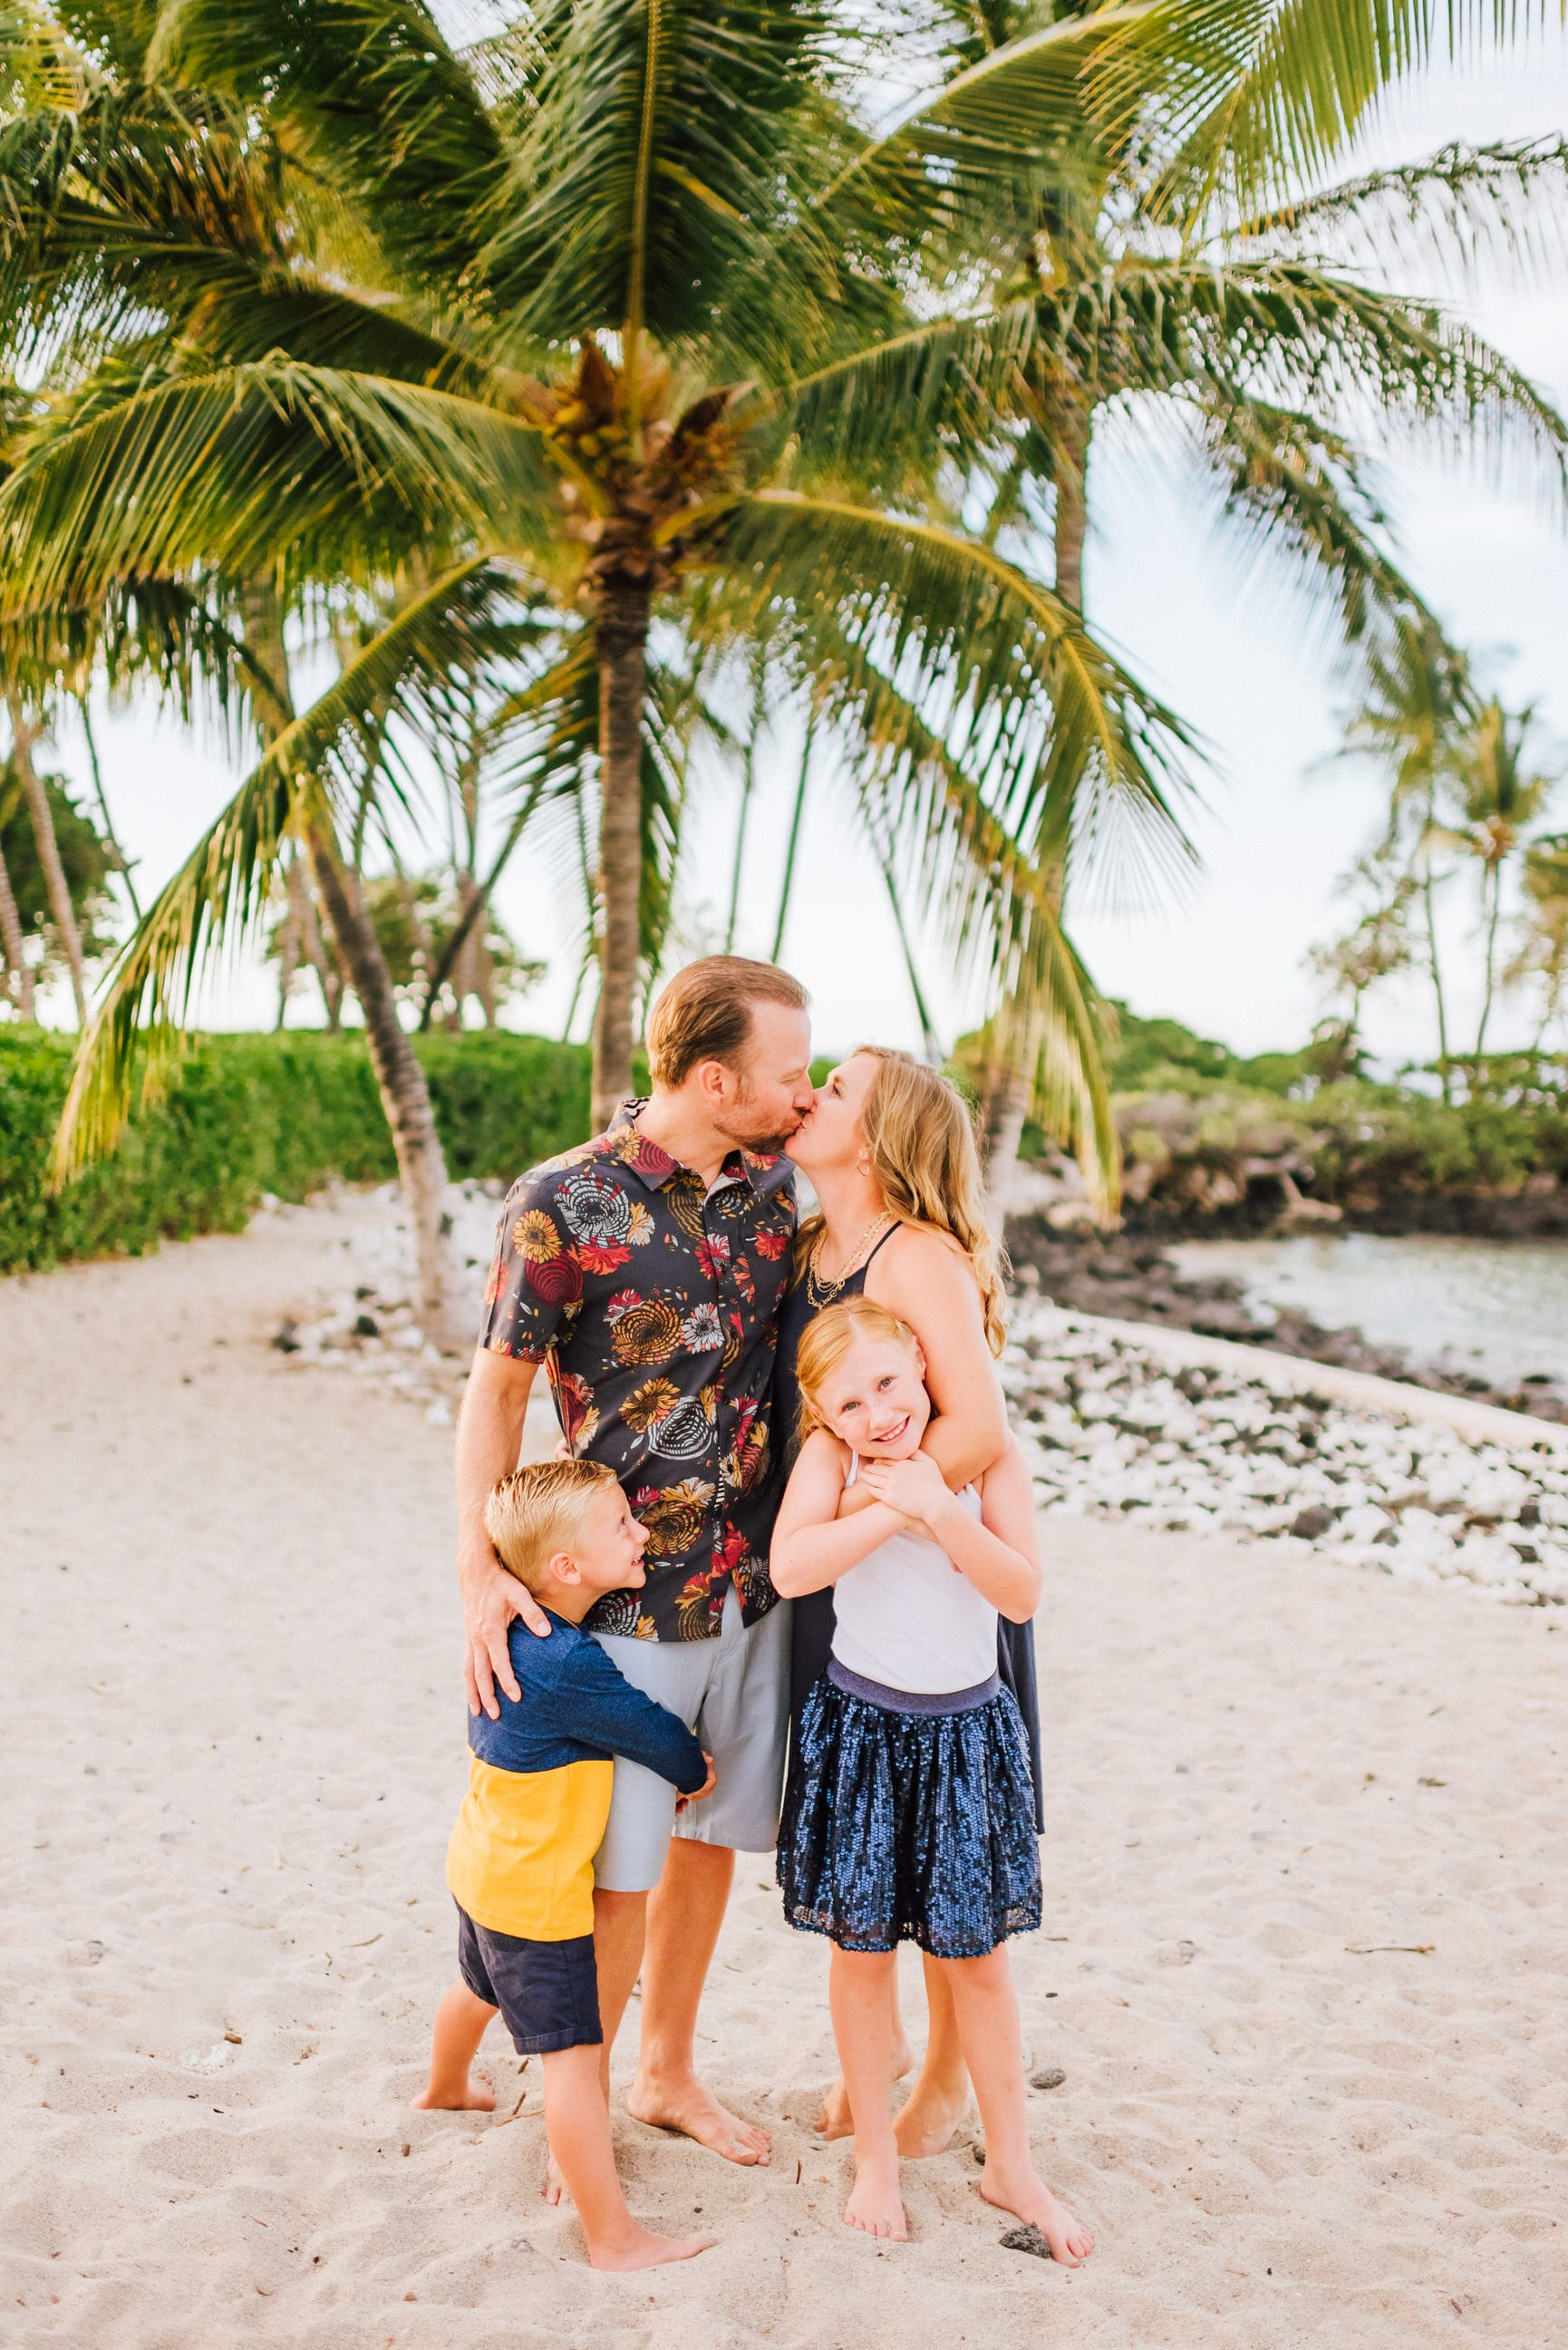 Kona-Photographer-Hawaii-Family-Photos-7.jpg